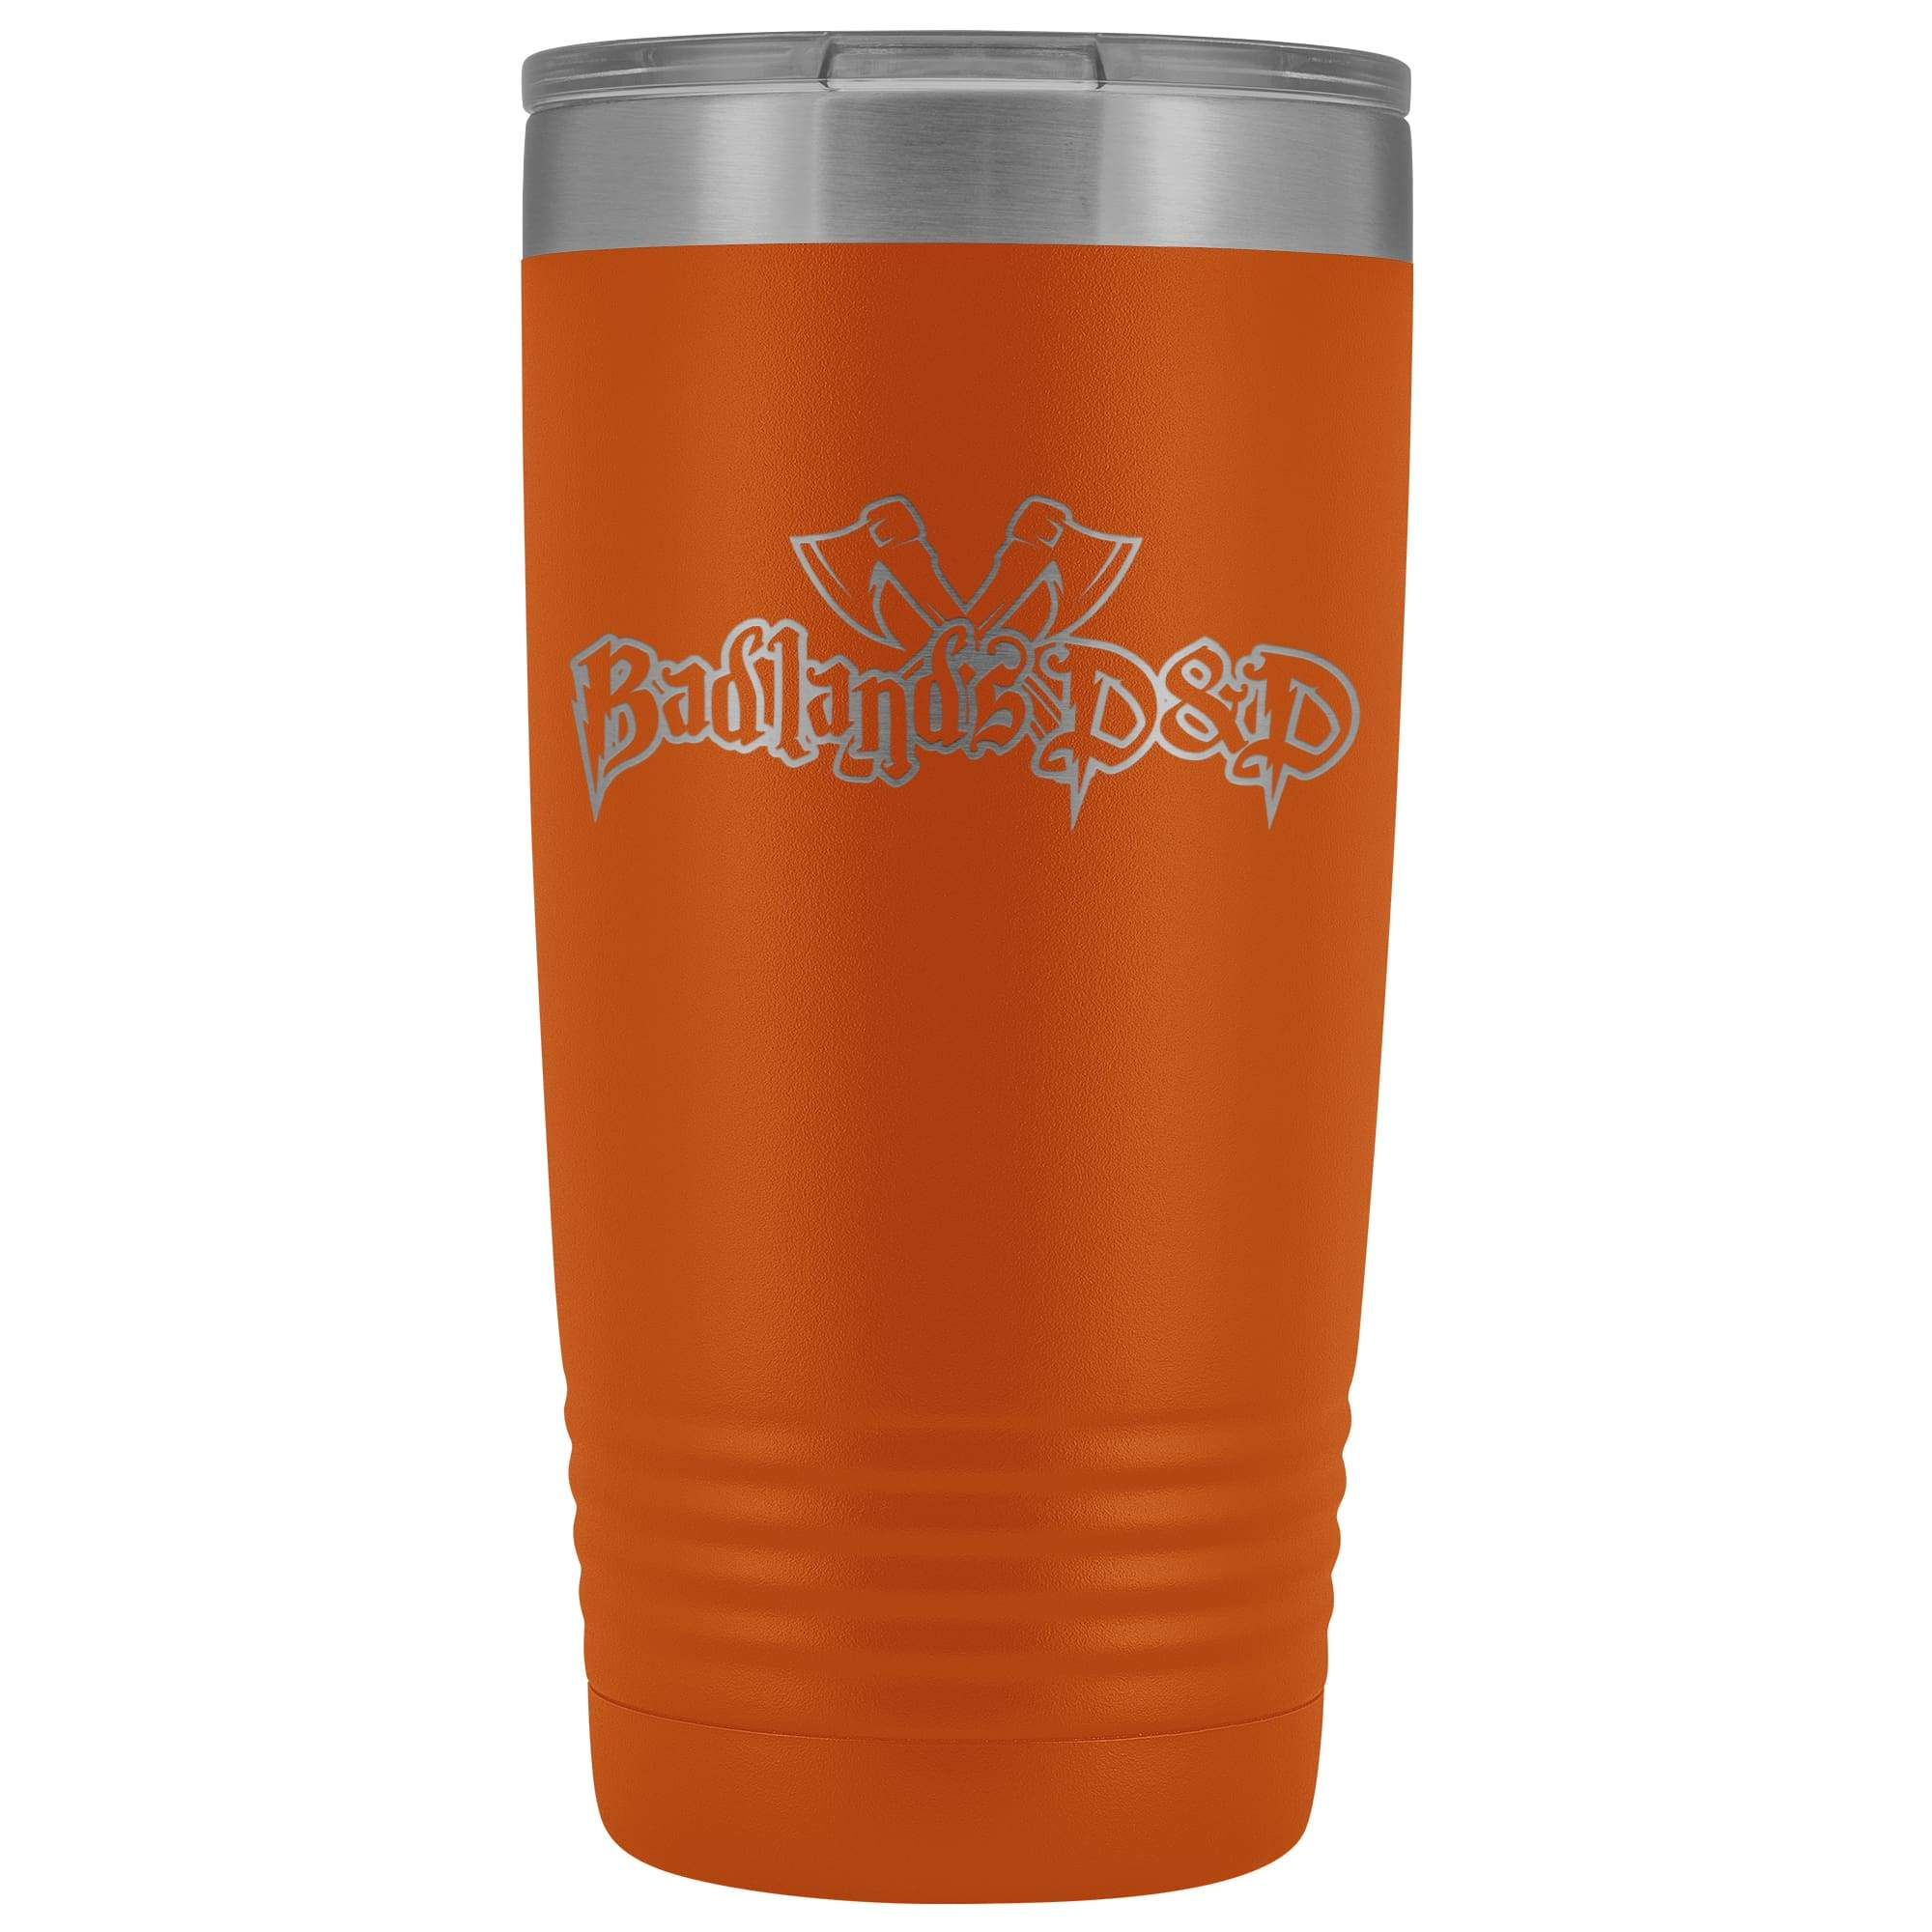 Badlands D&D 20oz Vacuum Tumbler - Orange - Tumblers